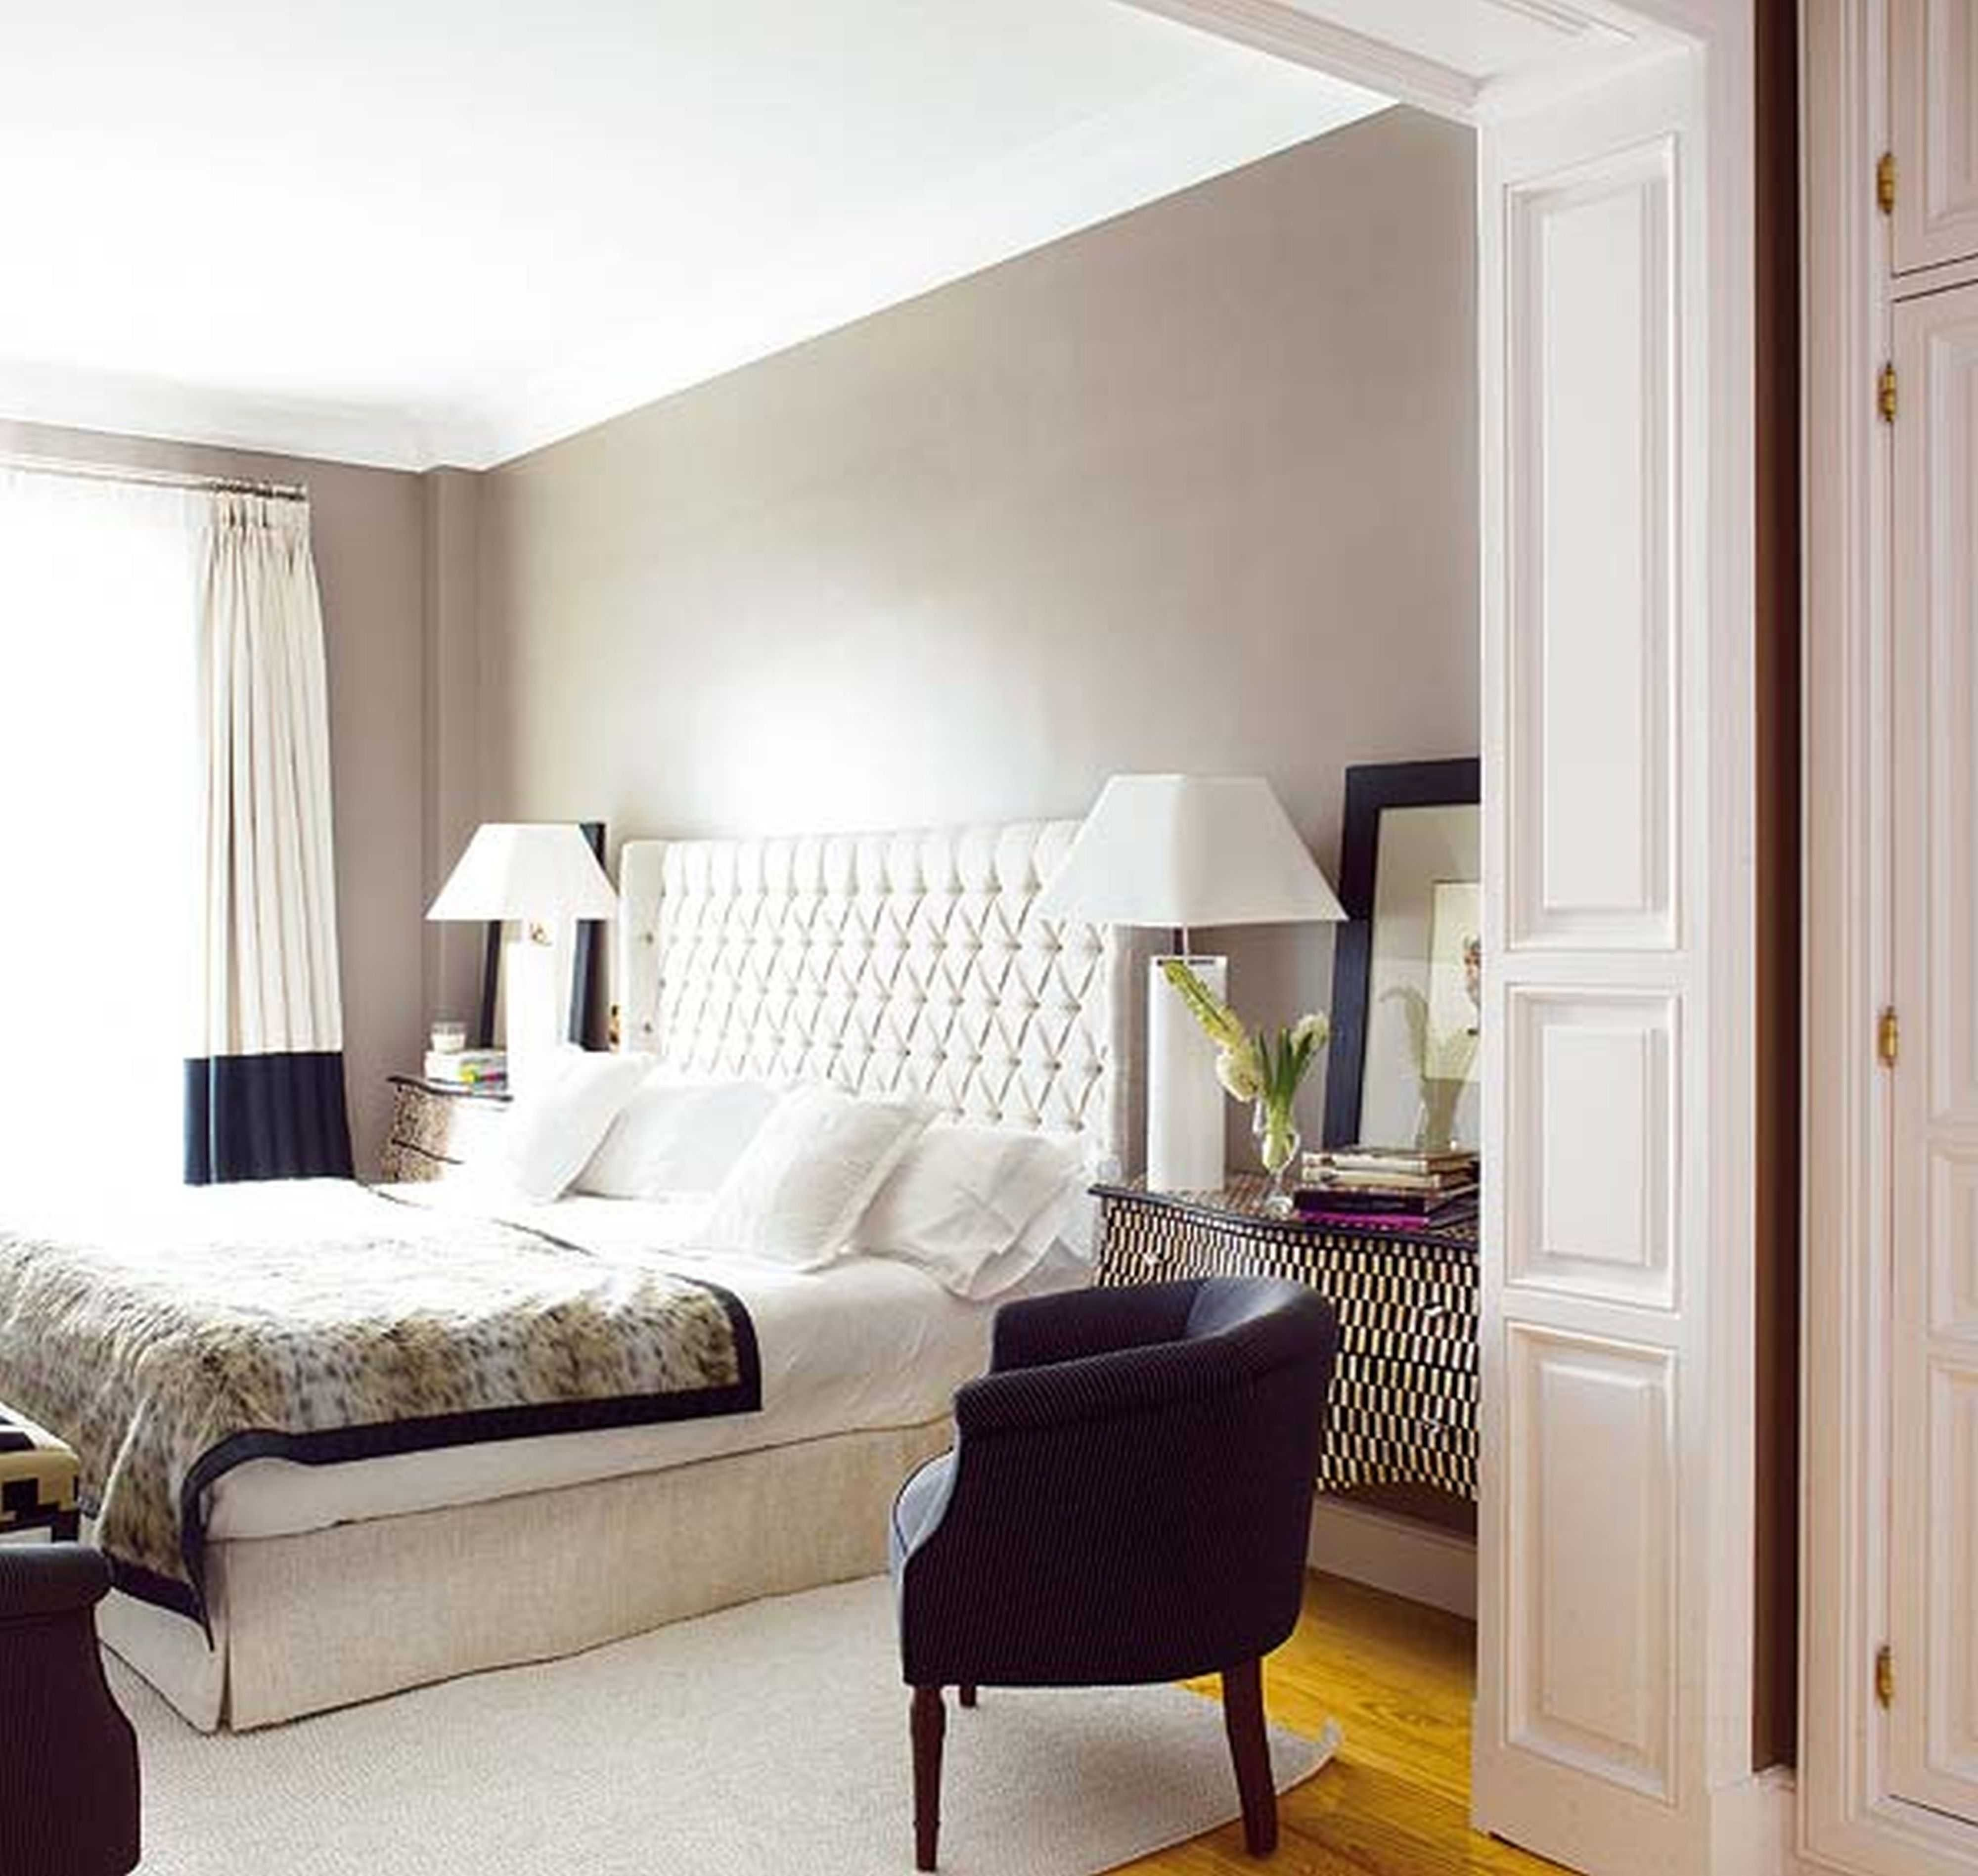 10 Pretty Paint Color Ideas For Bedrooms bedroom paint color ideas for collection including enchanting master 2021